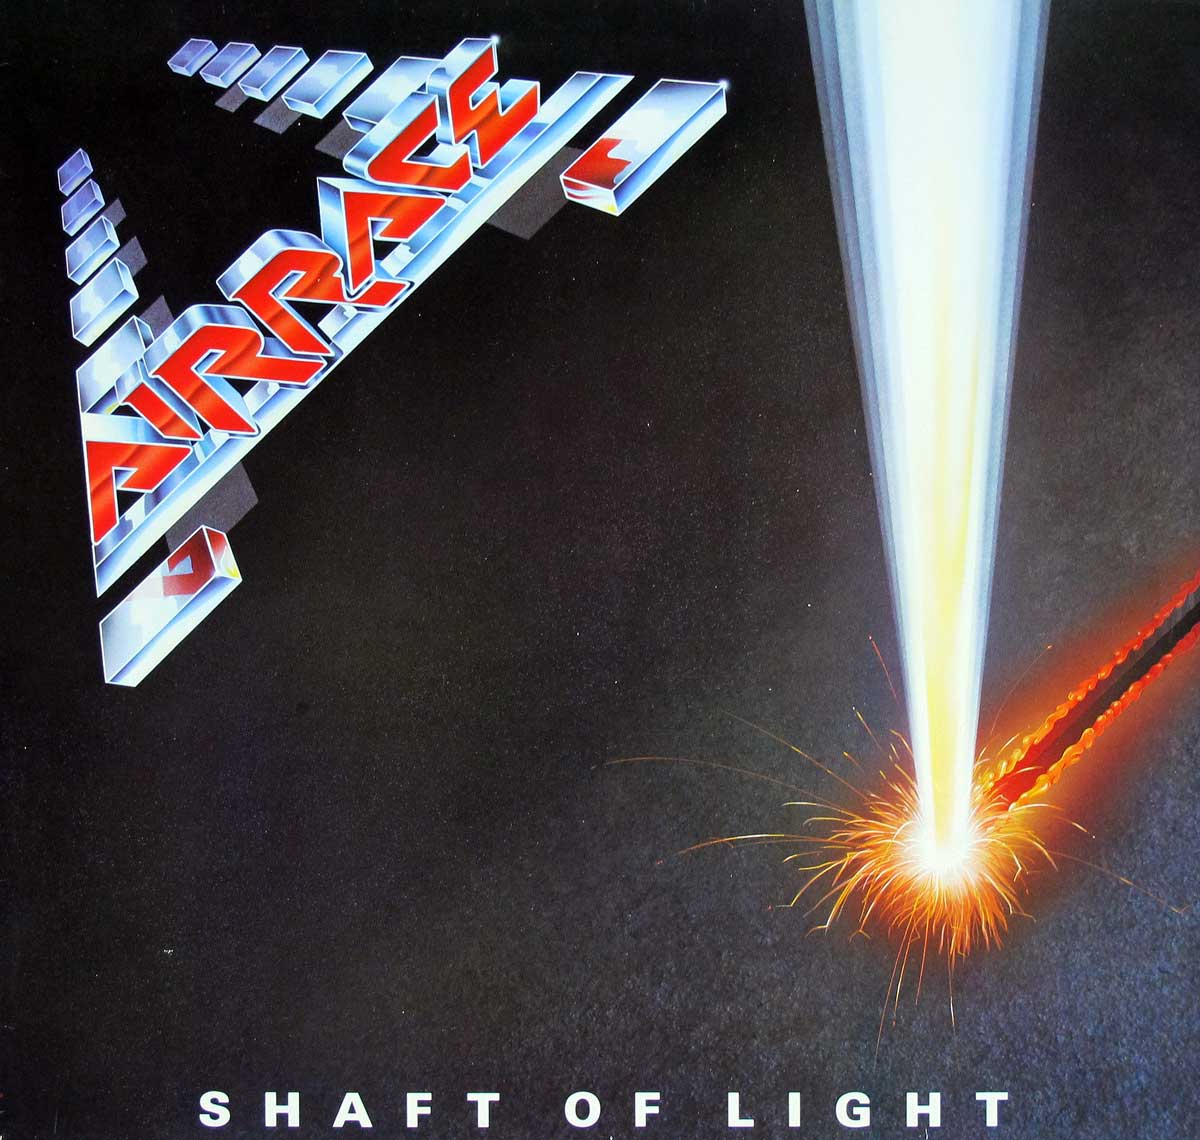 large photo of the album front cover of: AIRRACE SHAFT OF LIGHT